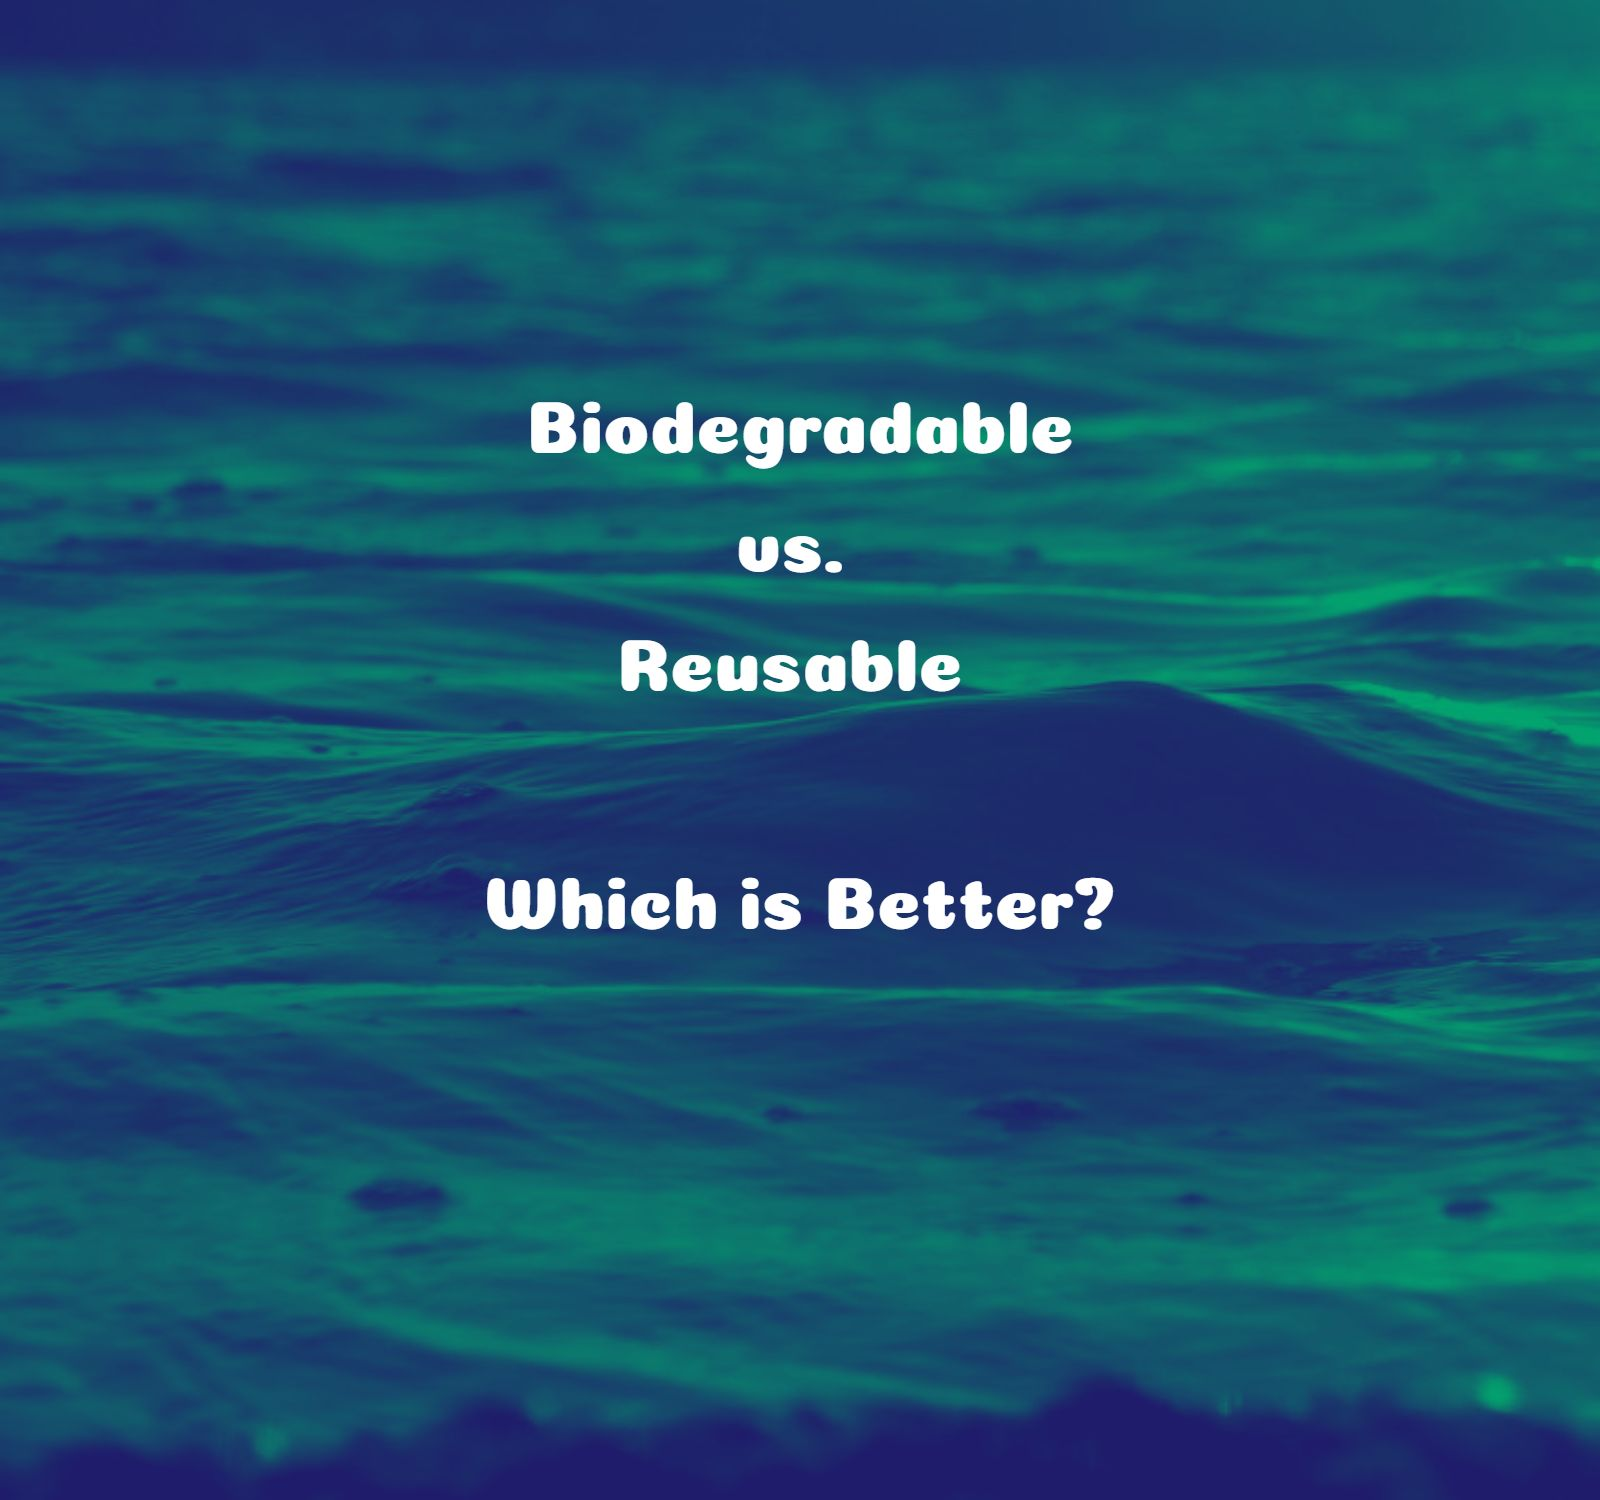 Biodegradable vs. Reusable - Which is Better?